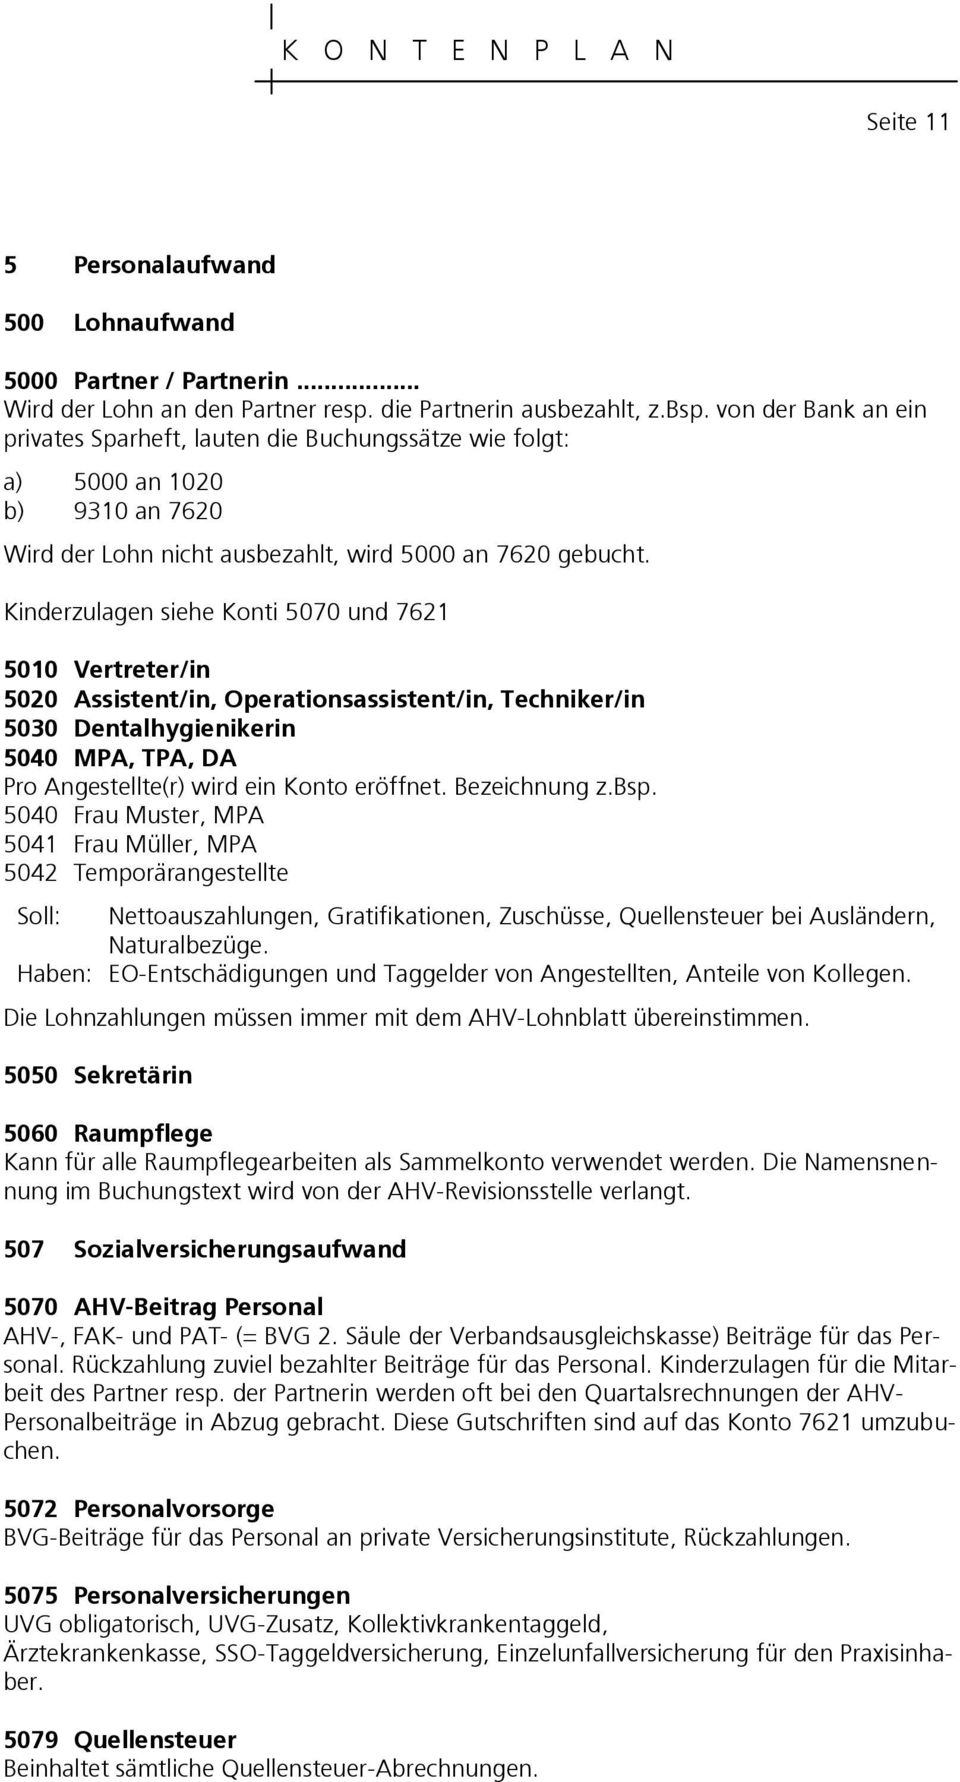 Kinderzulagen siehe Konti 5070 und 7621 5010 Vertreter/in 5020 Assistent/in, Operationsassistent/in, Techniker/in 5030 Dentalhygienikerin 5040 MPA, TPA, DA Pro Angestellte(r) wird ein Konto eröffnet.